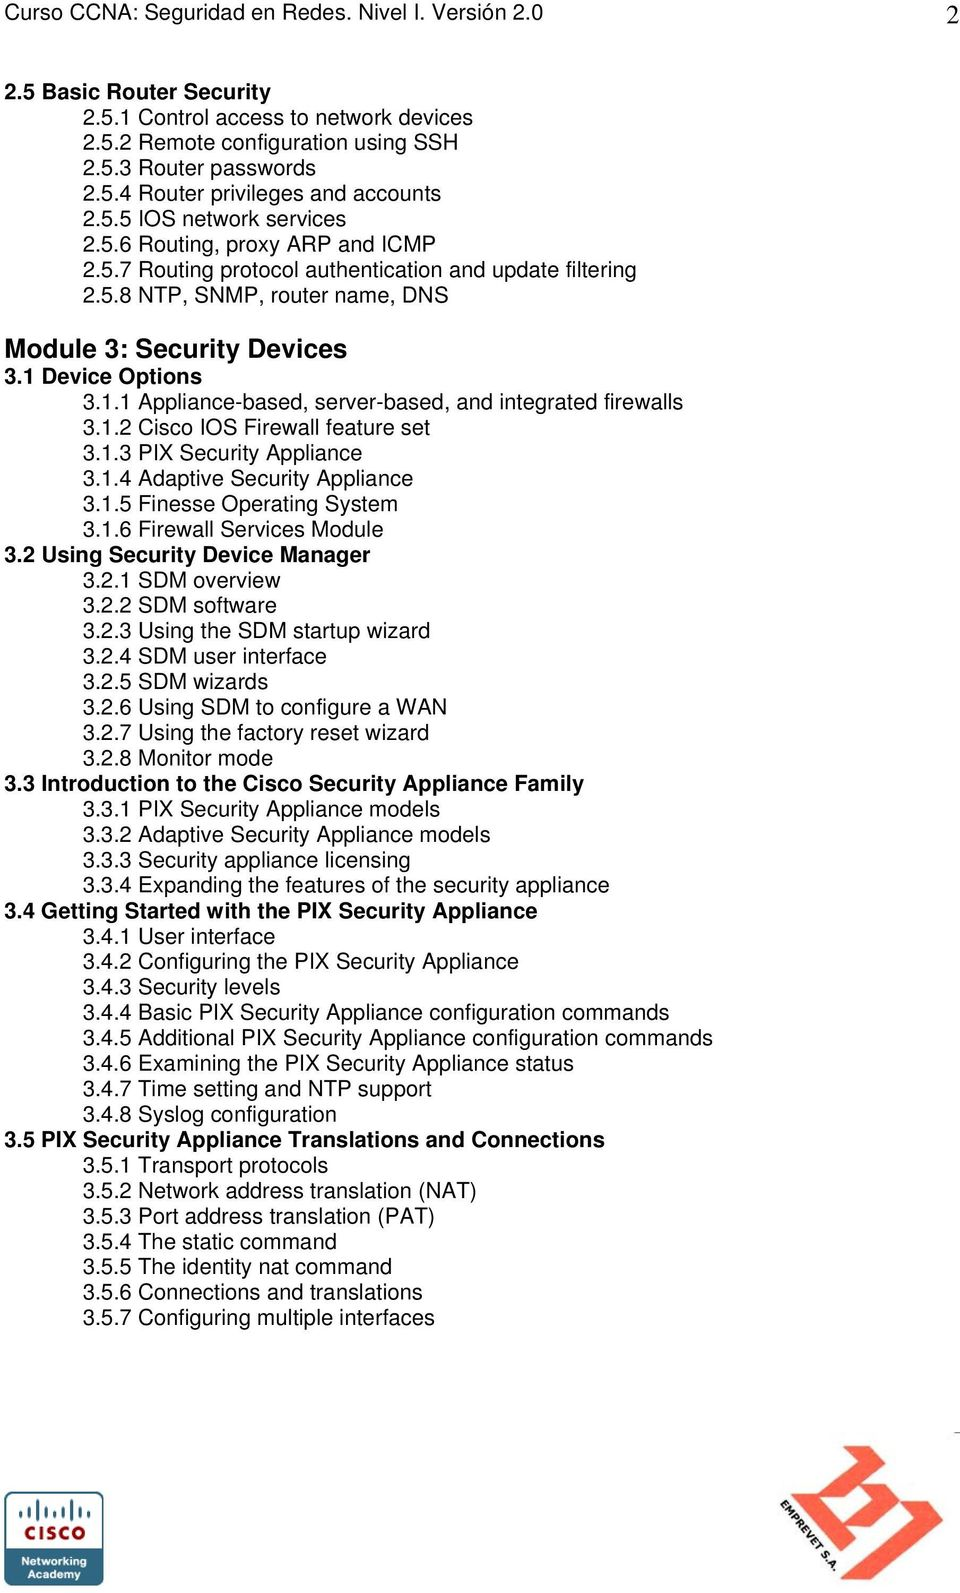 1.1 Appliance-based, server-based, and integrated firewalls 3.1.2 Cisco IOS Firewall feature set 3.1.3 PIX Security Appliance 3.1.4 Adaptive Security Appliance 3.1.5 Finesse Operating System 3.1.6 Firewall Services Module 3.